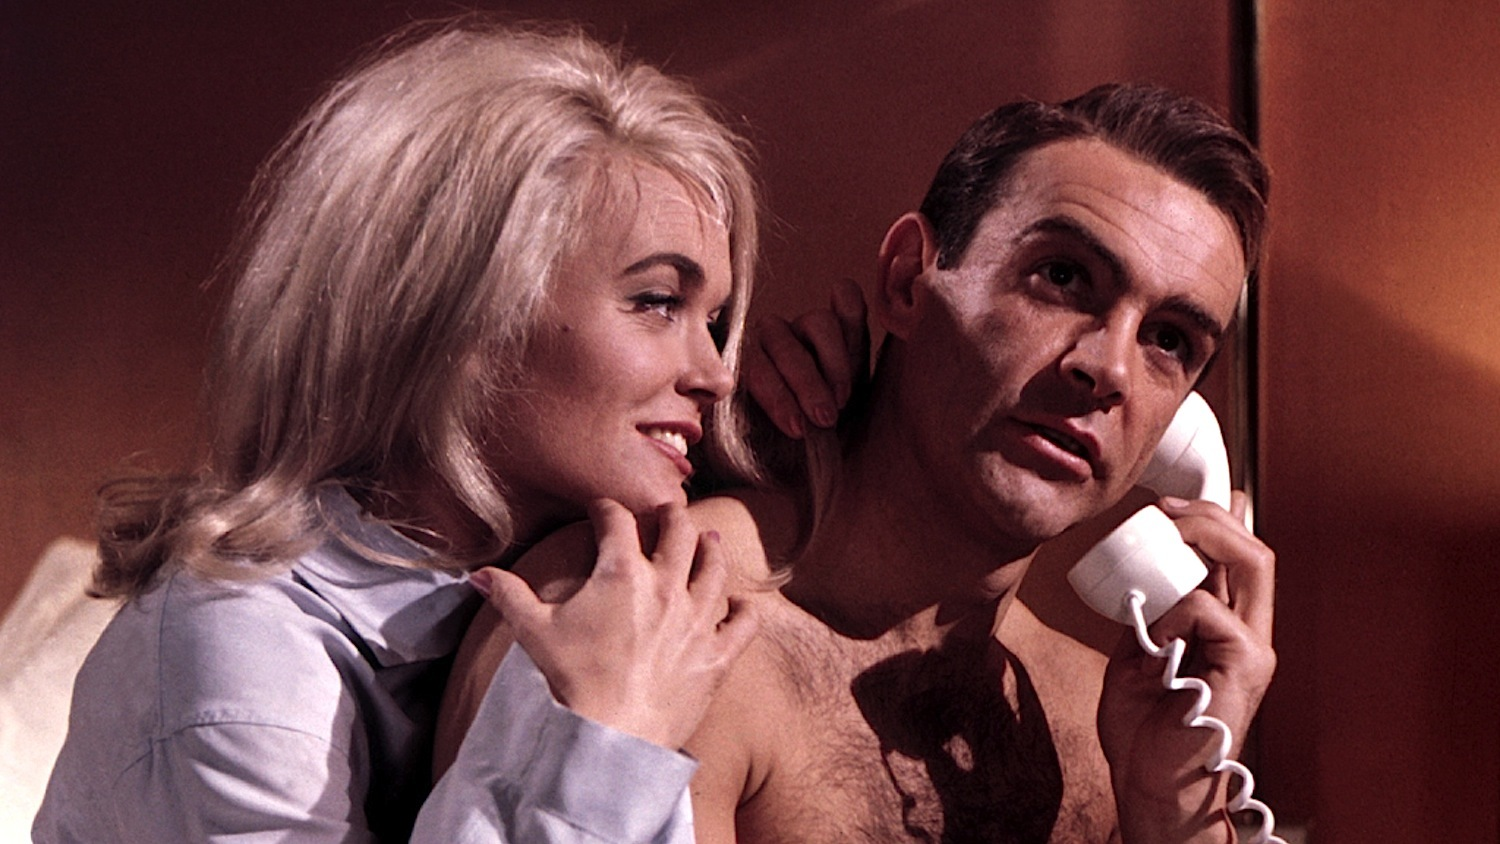 Sean Connery - James Bond - BONS BAISERS DE RUSSIE (FROM RUSSIA WITH LOVE) de Terence Young